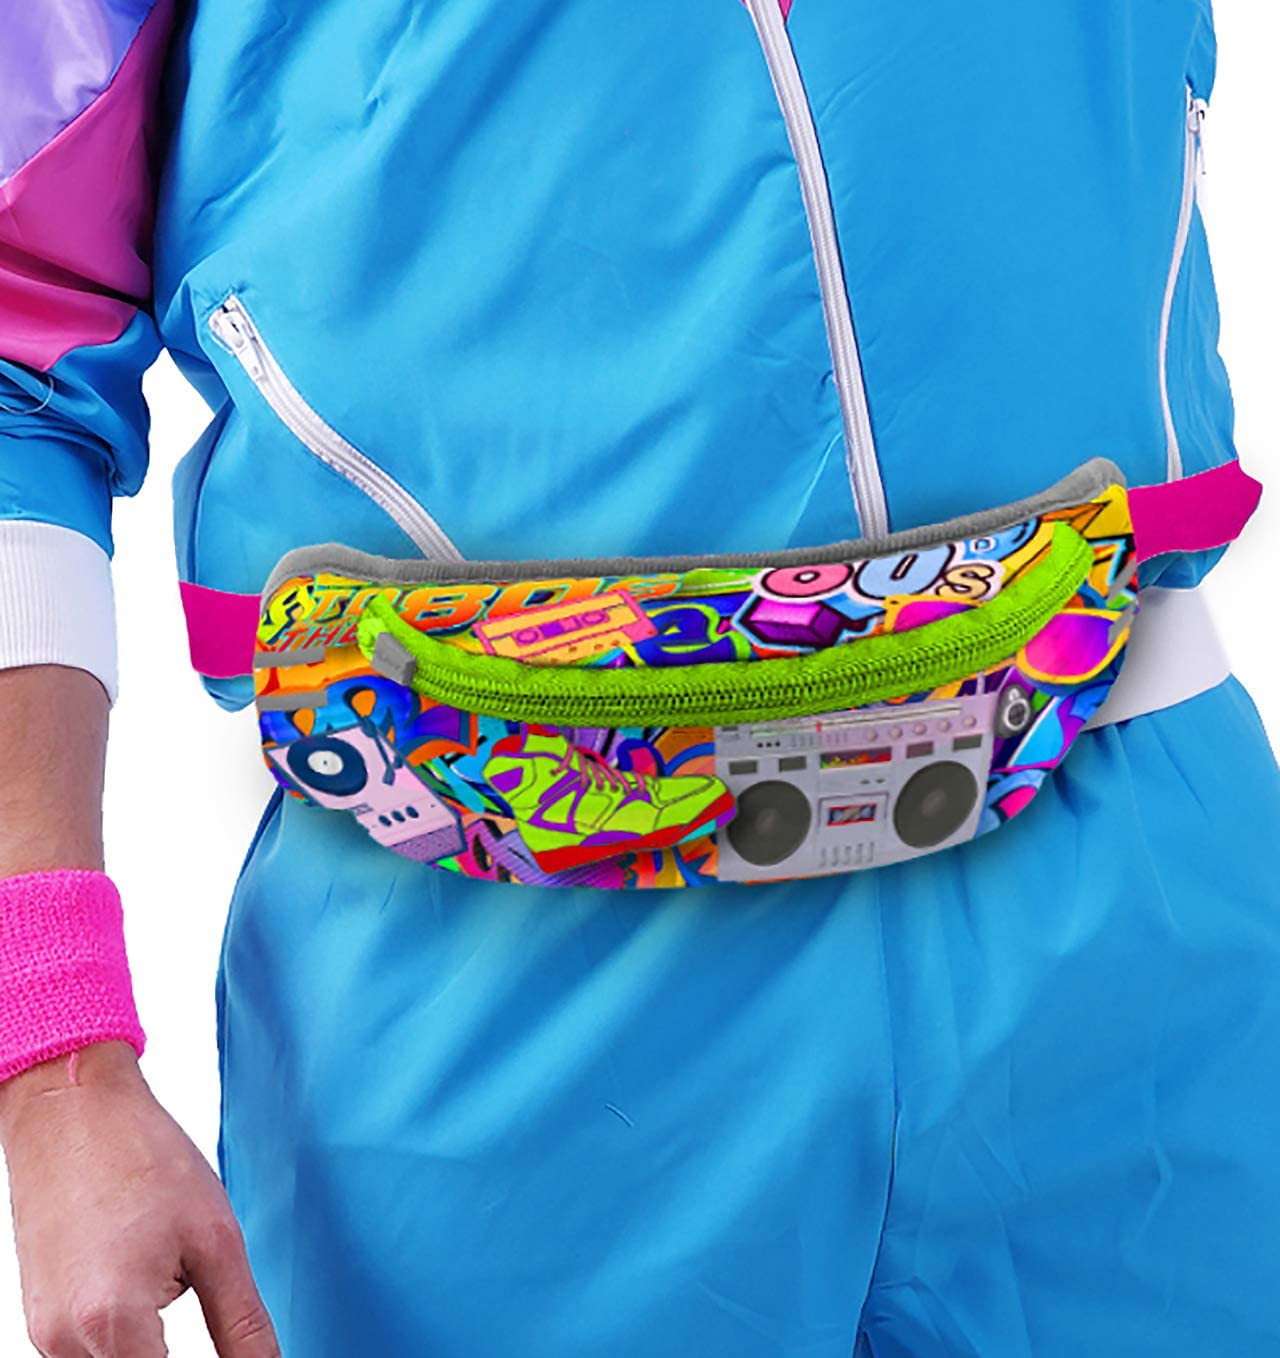 streetwear cool Vintage 90/'s pink /& blue textile zip-up fanny pack Adjustable strap waist bag All fabric bum bag Neon banana bagHipster